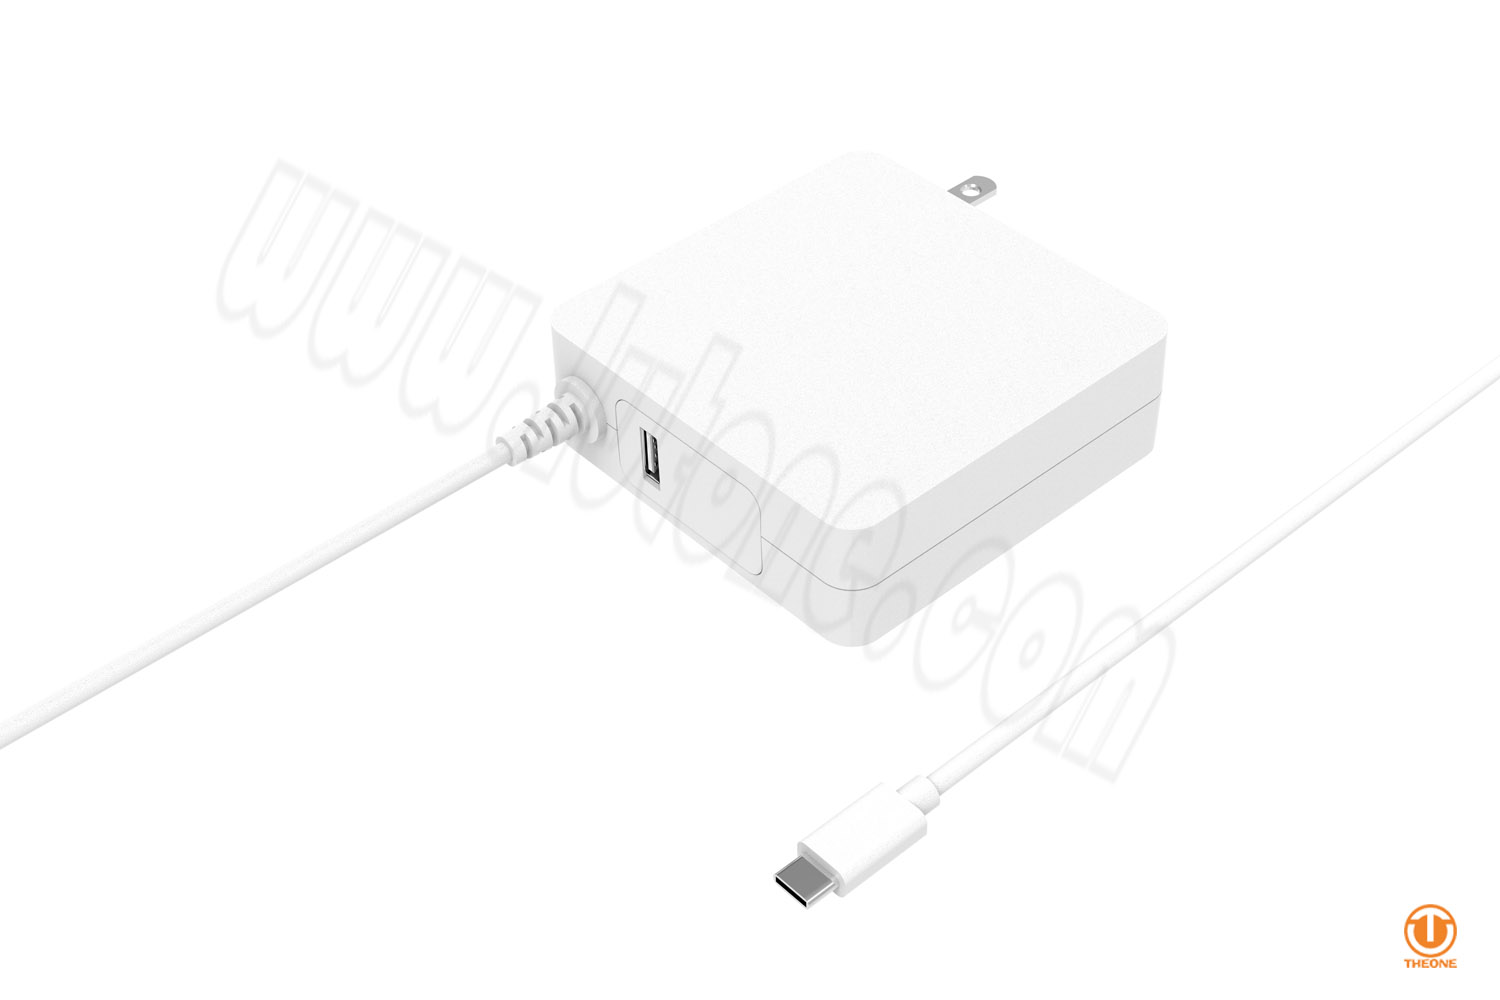 tp871la-3 typec power delivery charger